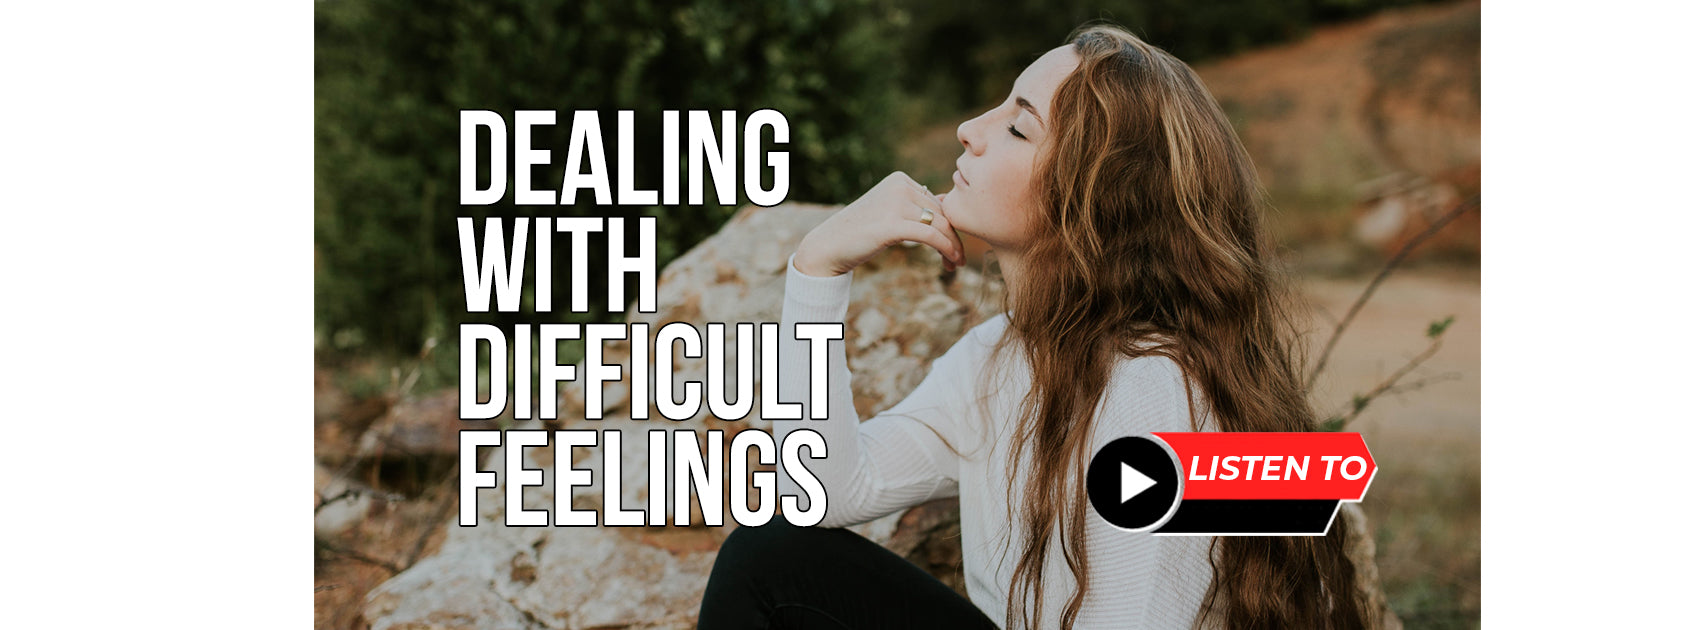 Dealing with Difficult Feelings